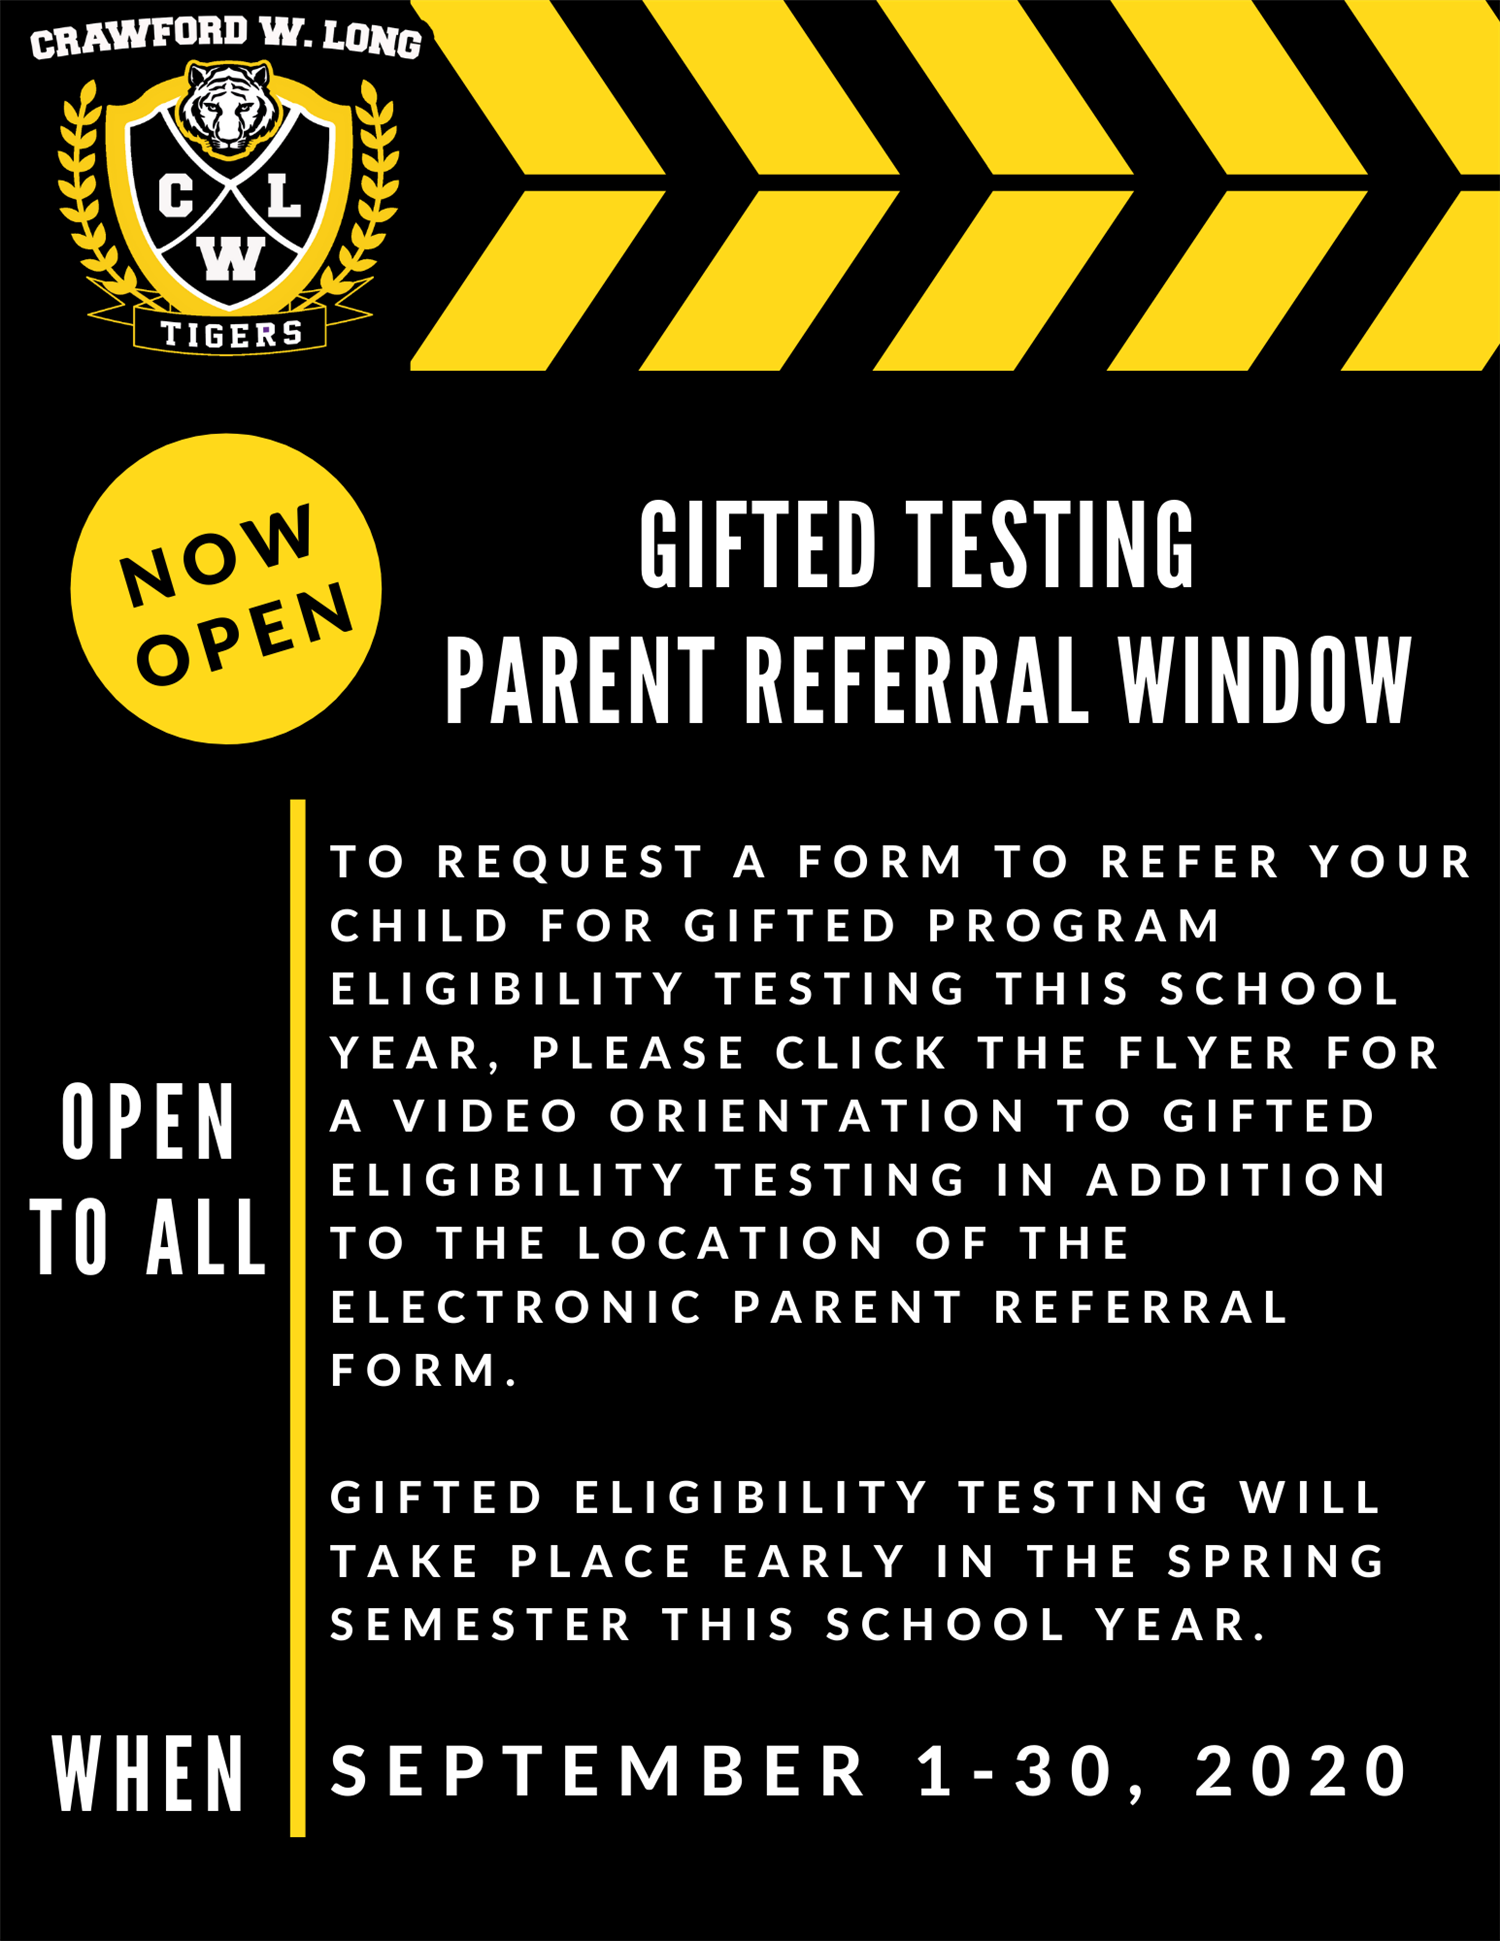 Gifted Testing Parent Referral Window